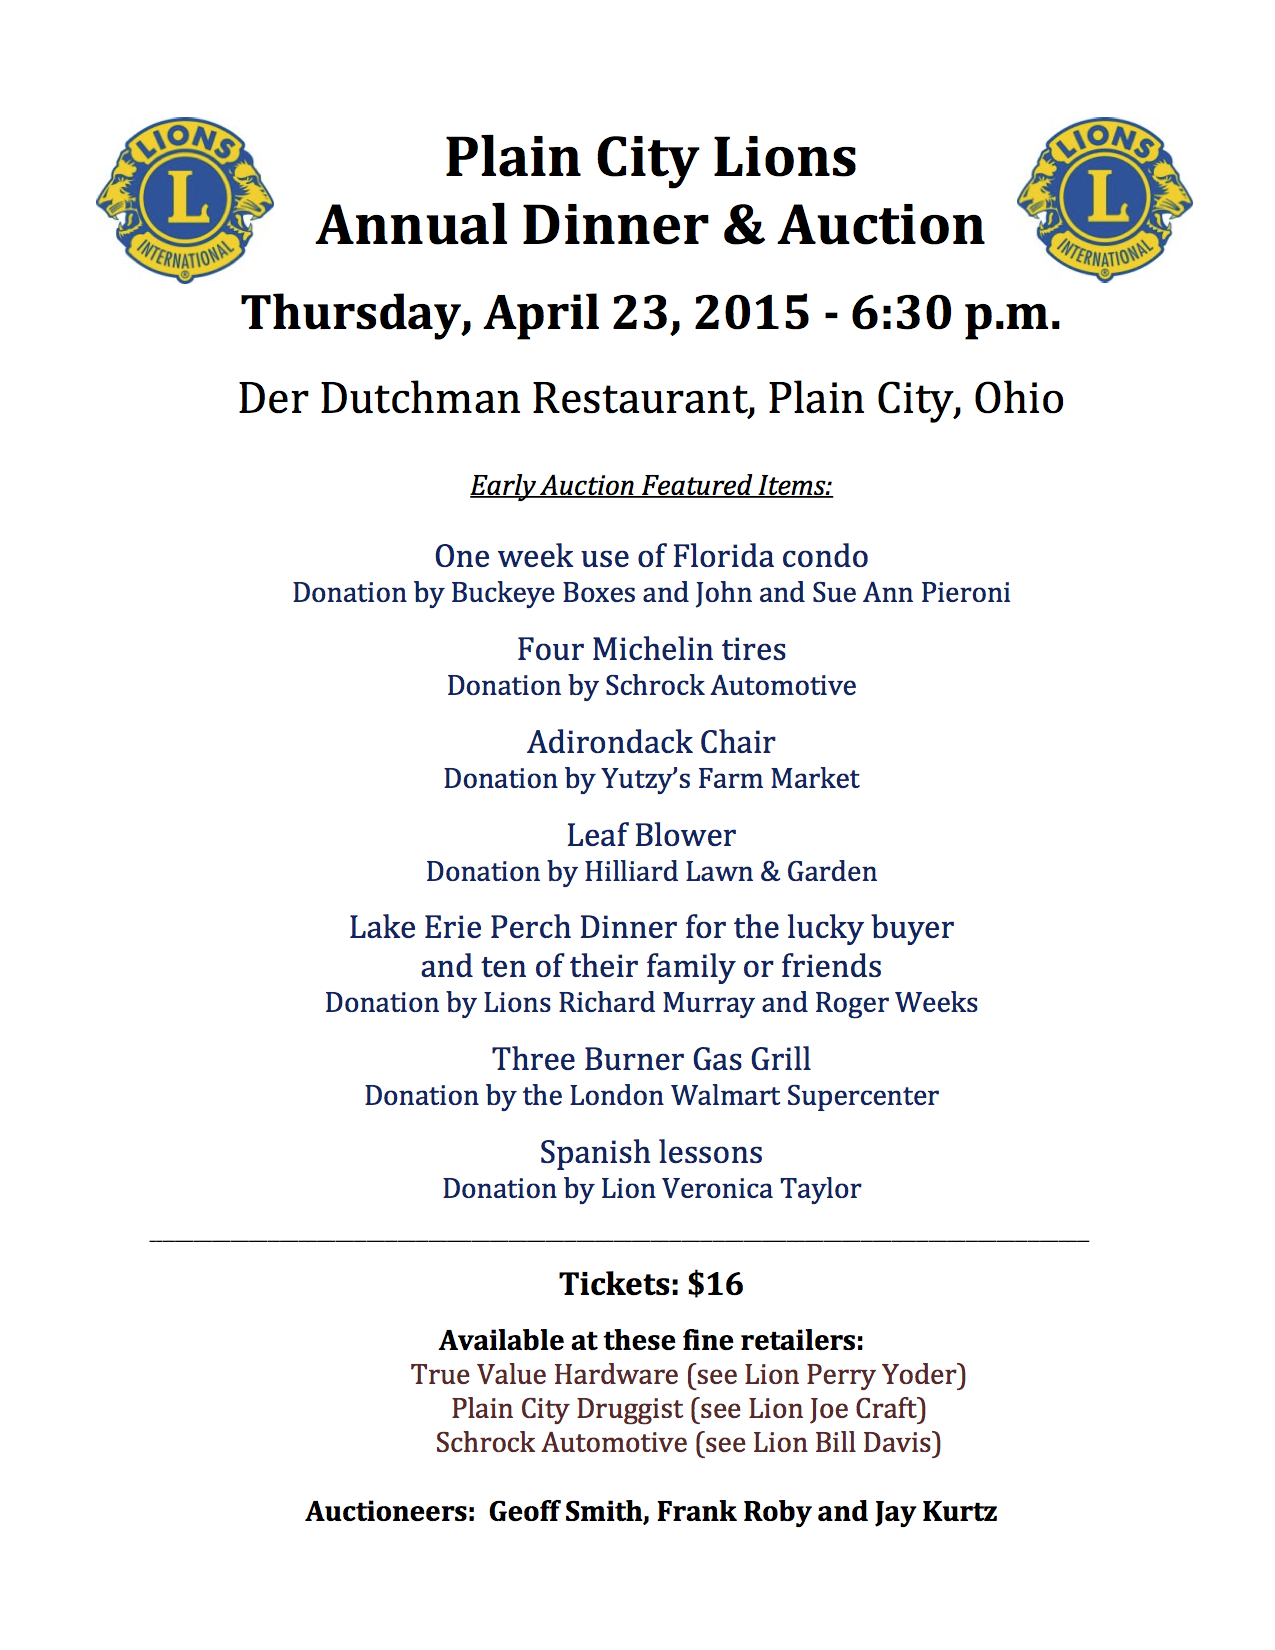 PC Lions Auction and Dinner Flier 2015 2